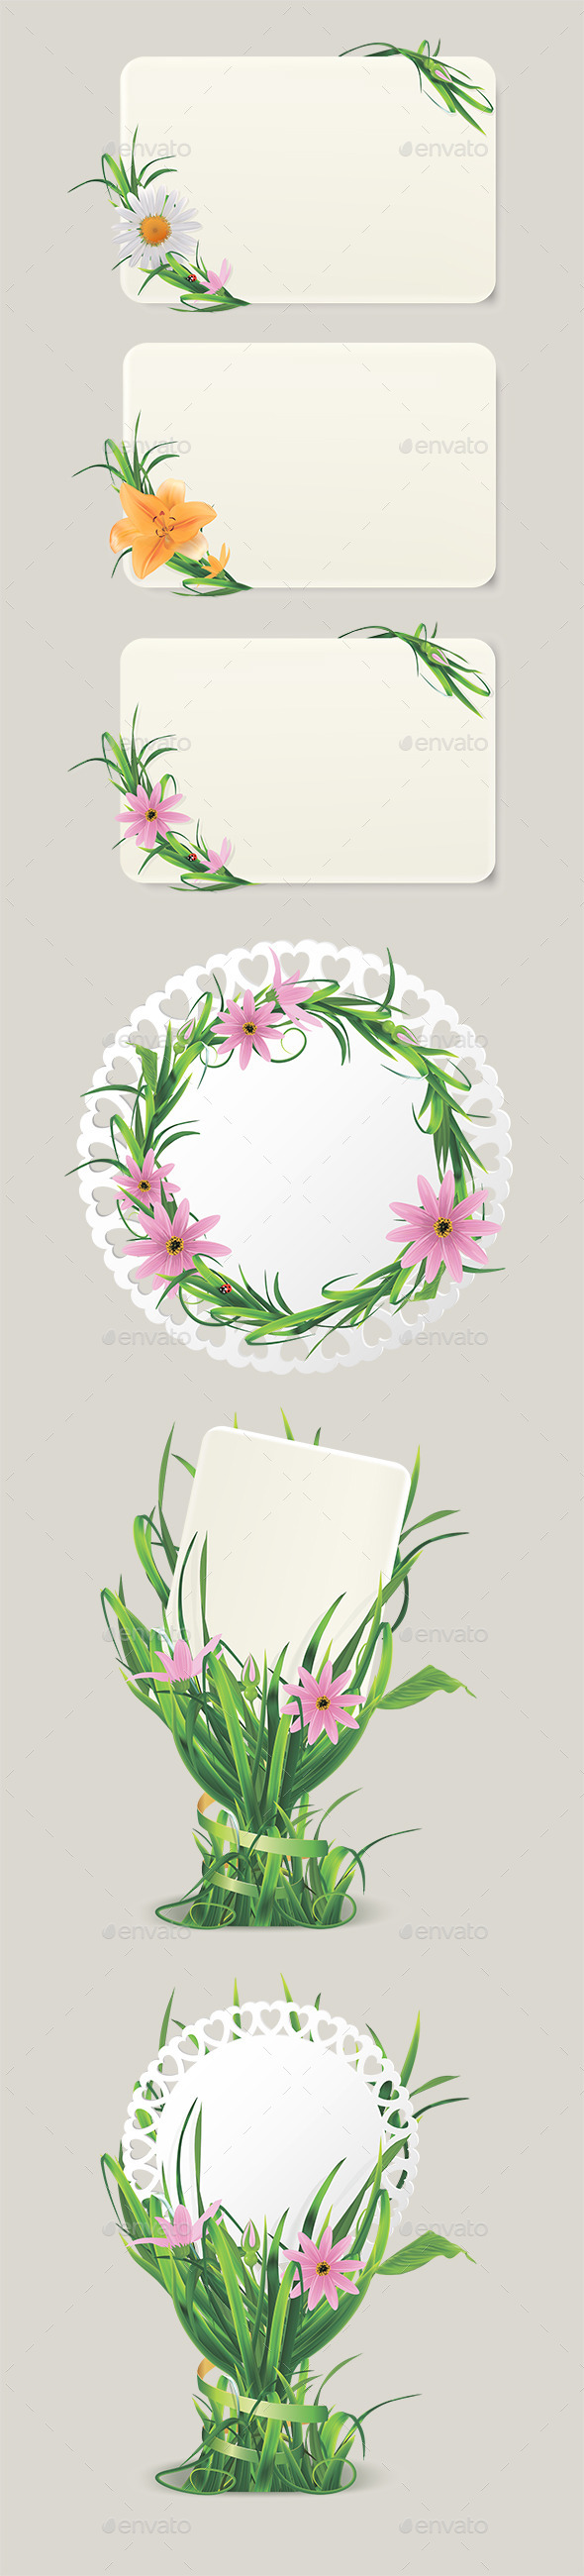 GraphicRiver Cards with Grass and Flowers 11768392